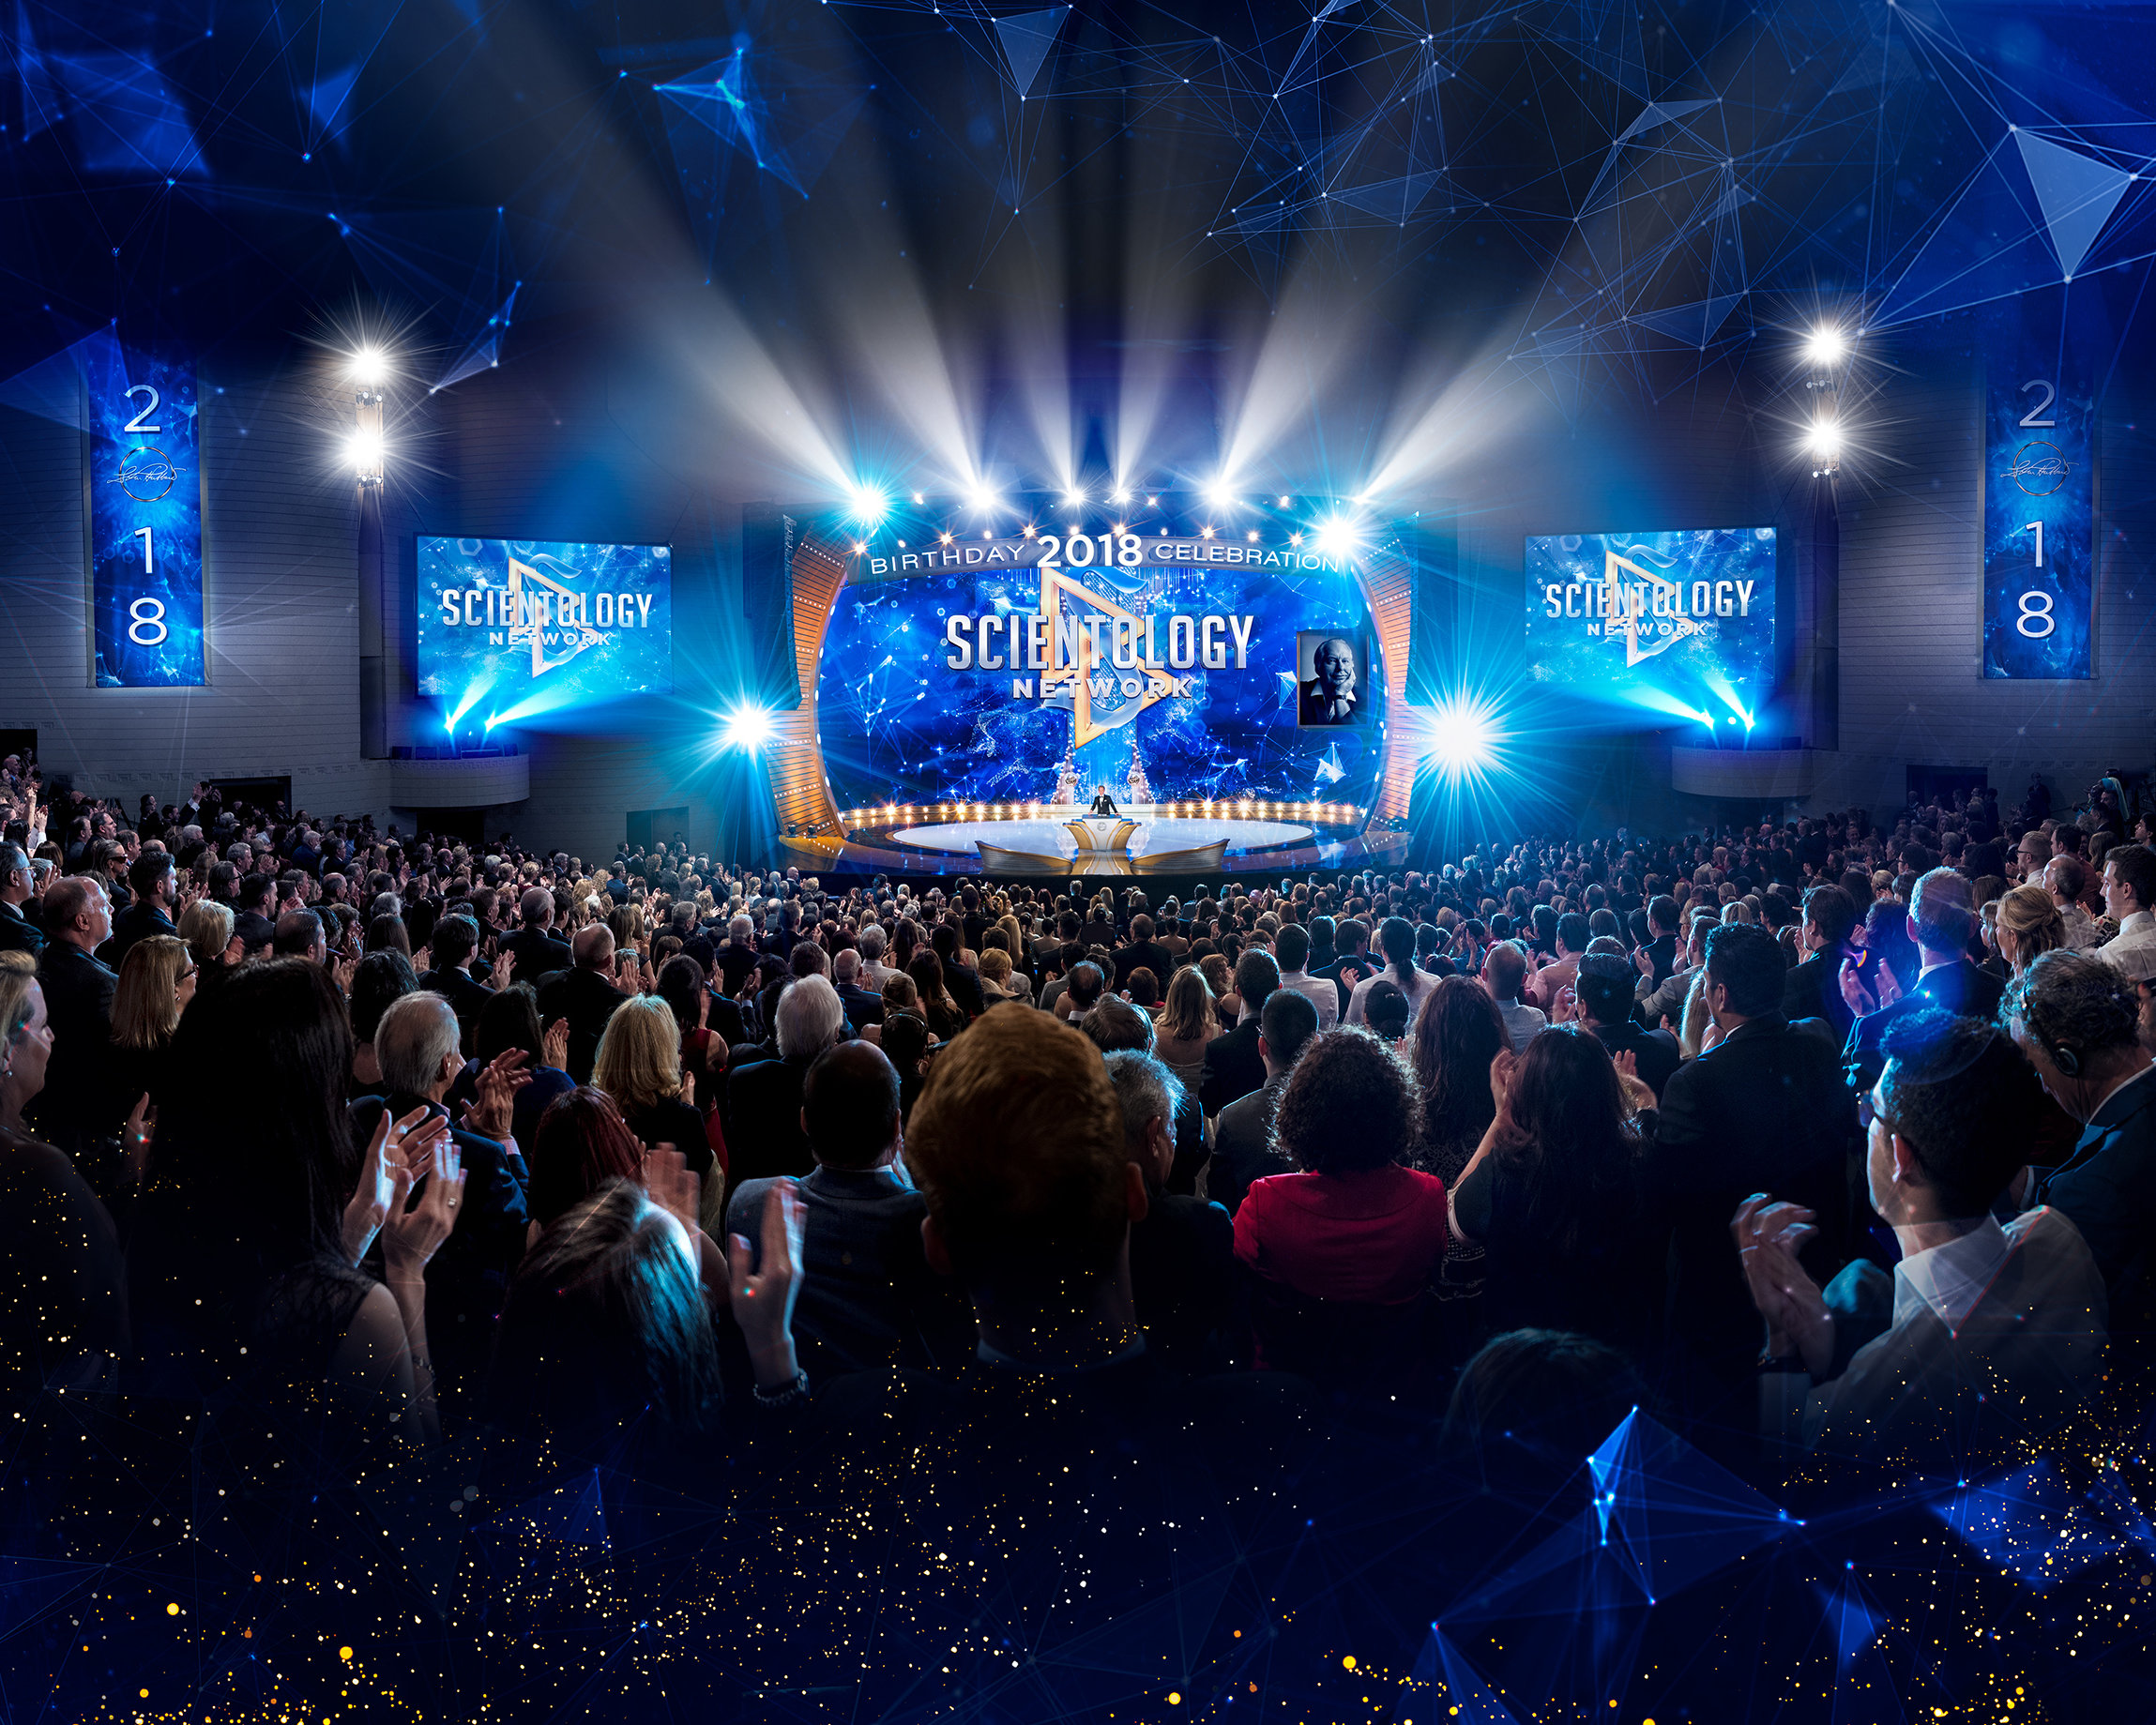 """Thousands Converge to Mark Scientology Founder's Birthday and a """"Flip of the Switch"""" for Unrelenting Dissemination"""